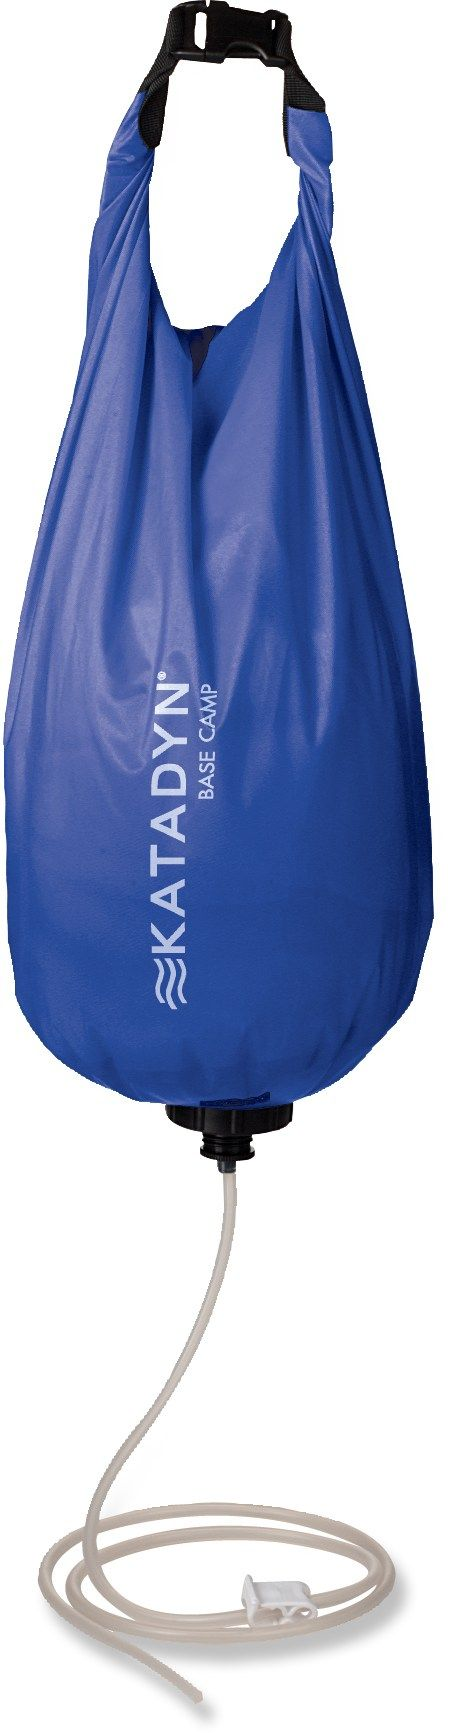 Katadyn Base Camp Water Filter - just used this on a backpacking trip. Great if you have a lot of people.